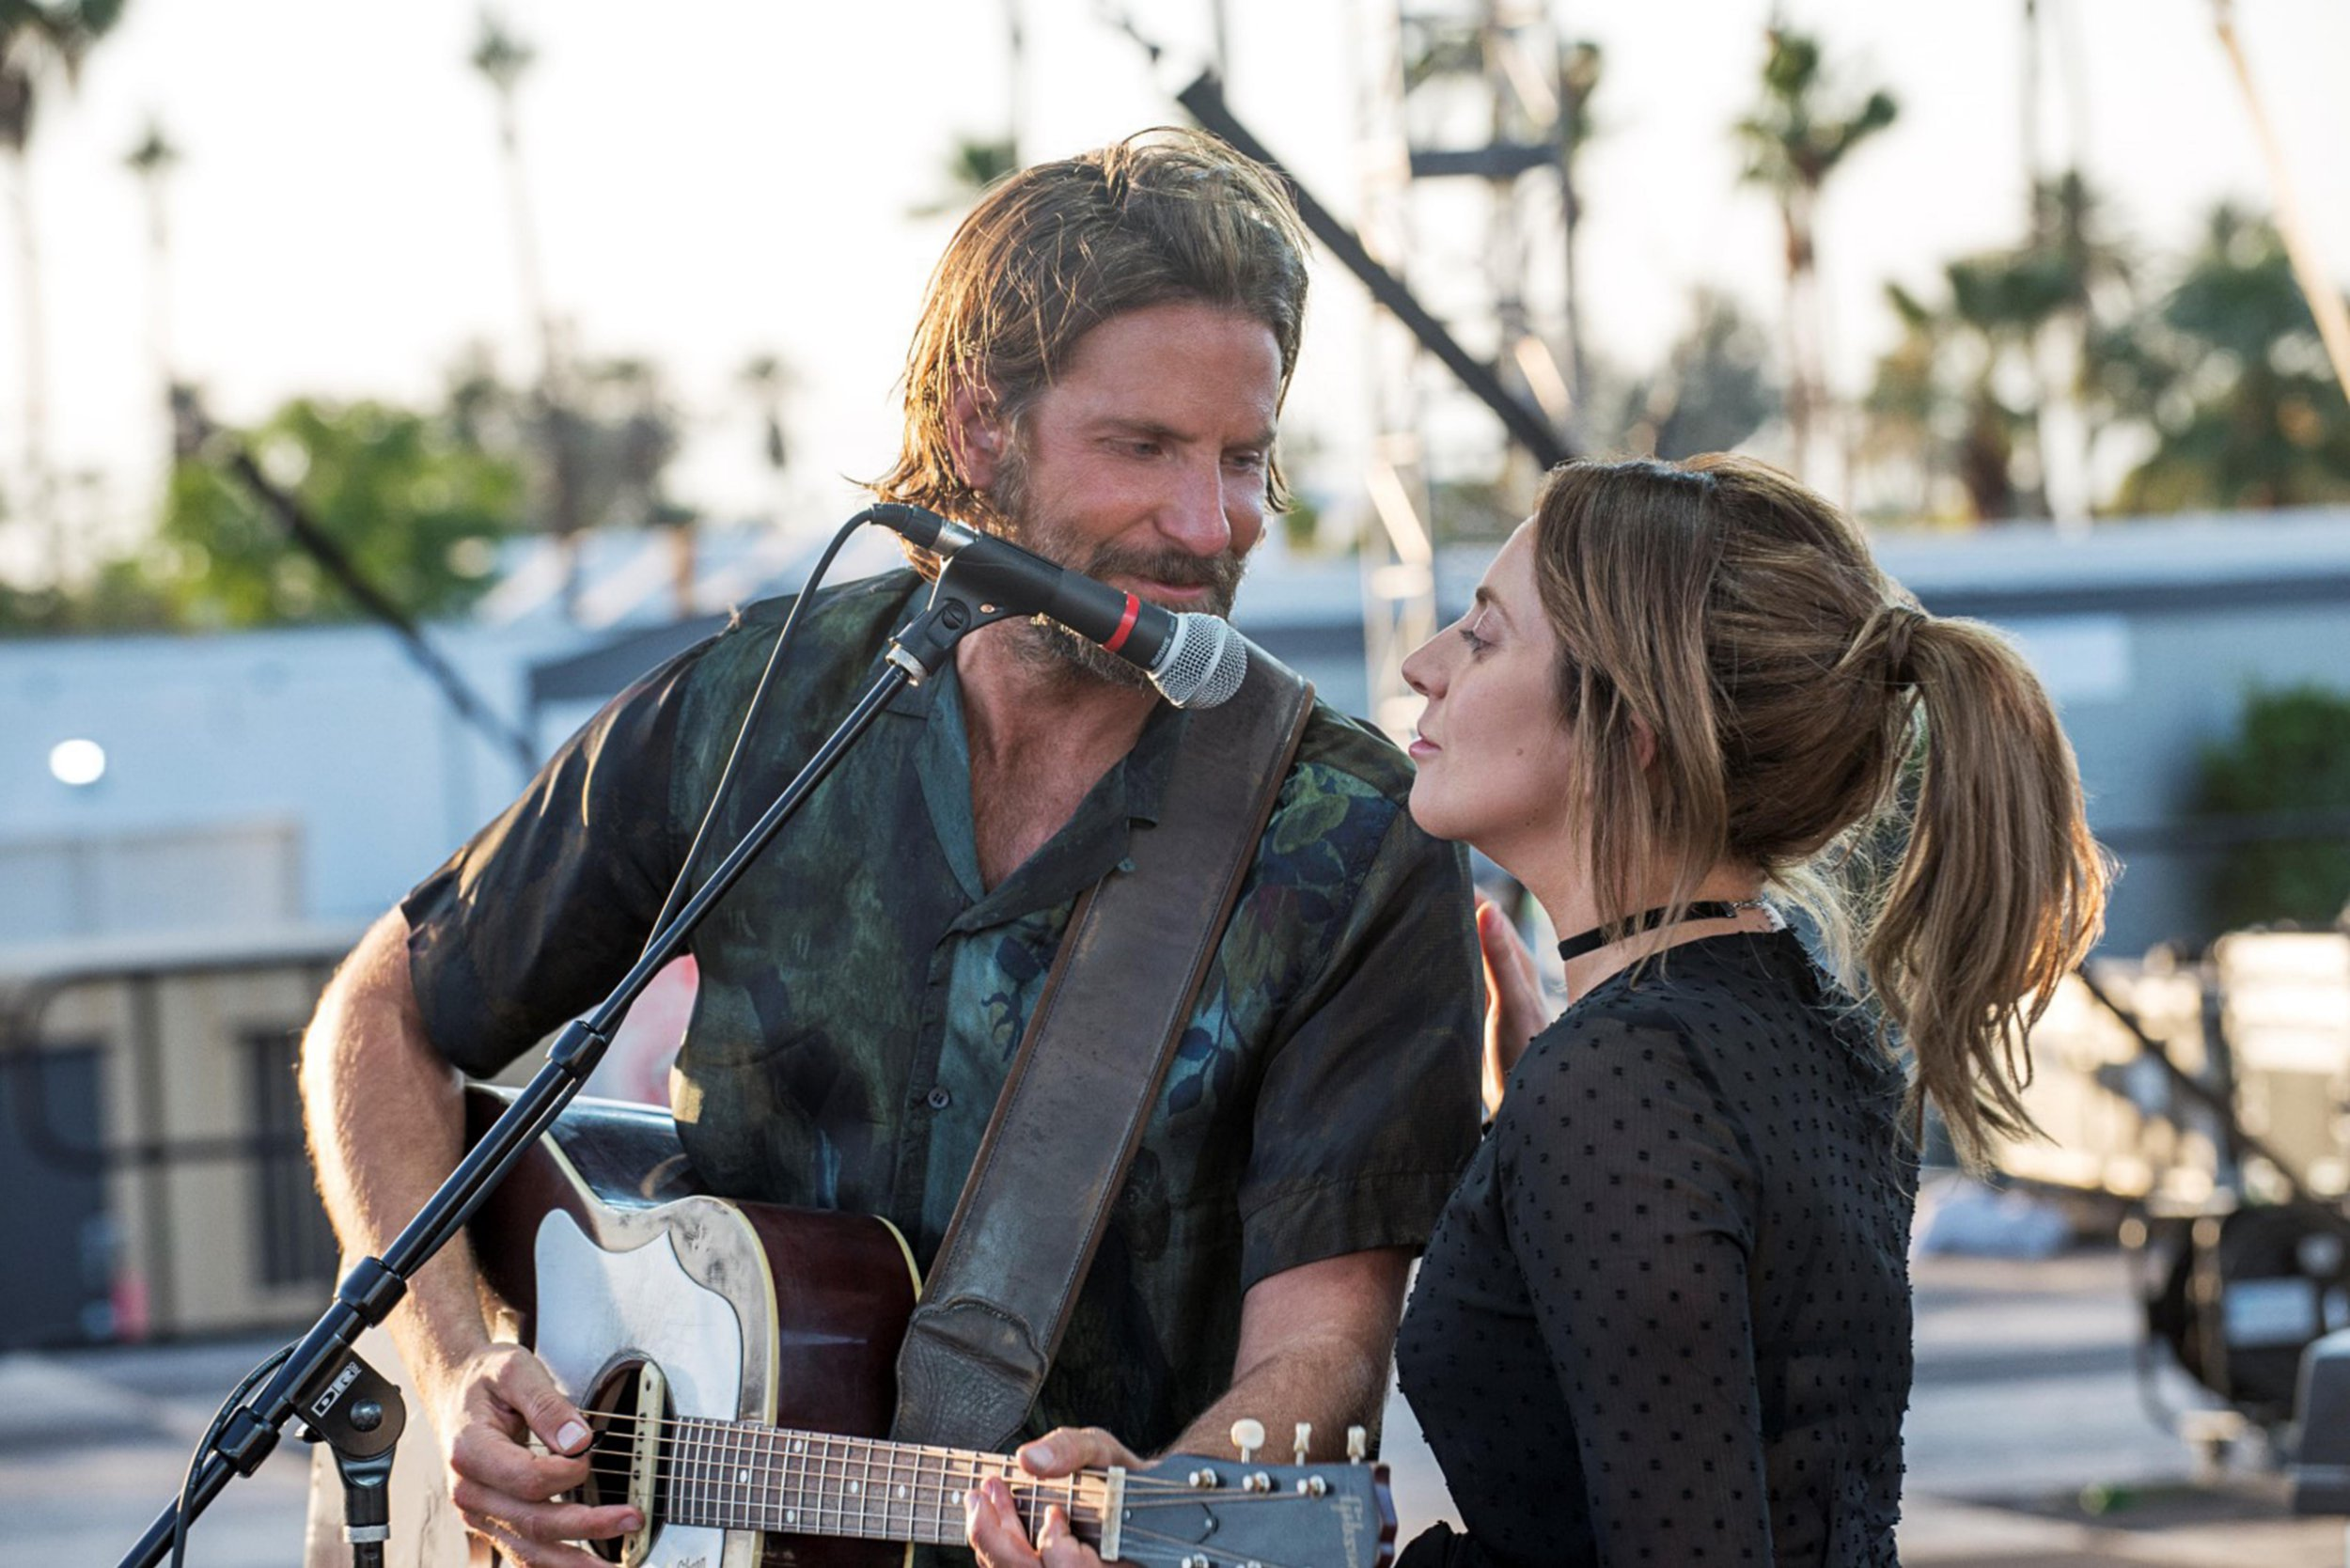 Lady Gaga and Bradley Cooper to present at SAG Awards after A Star Is Born success